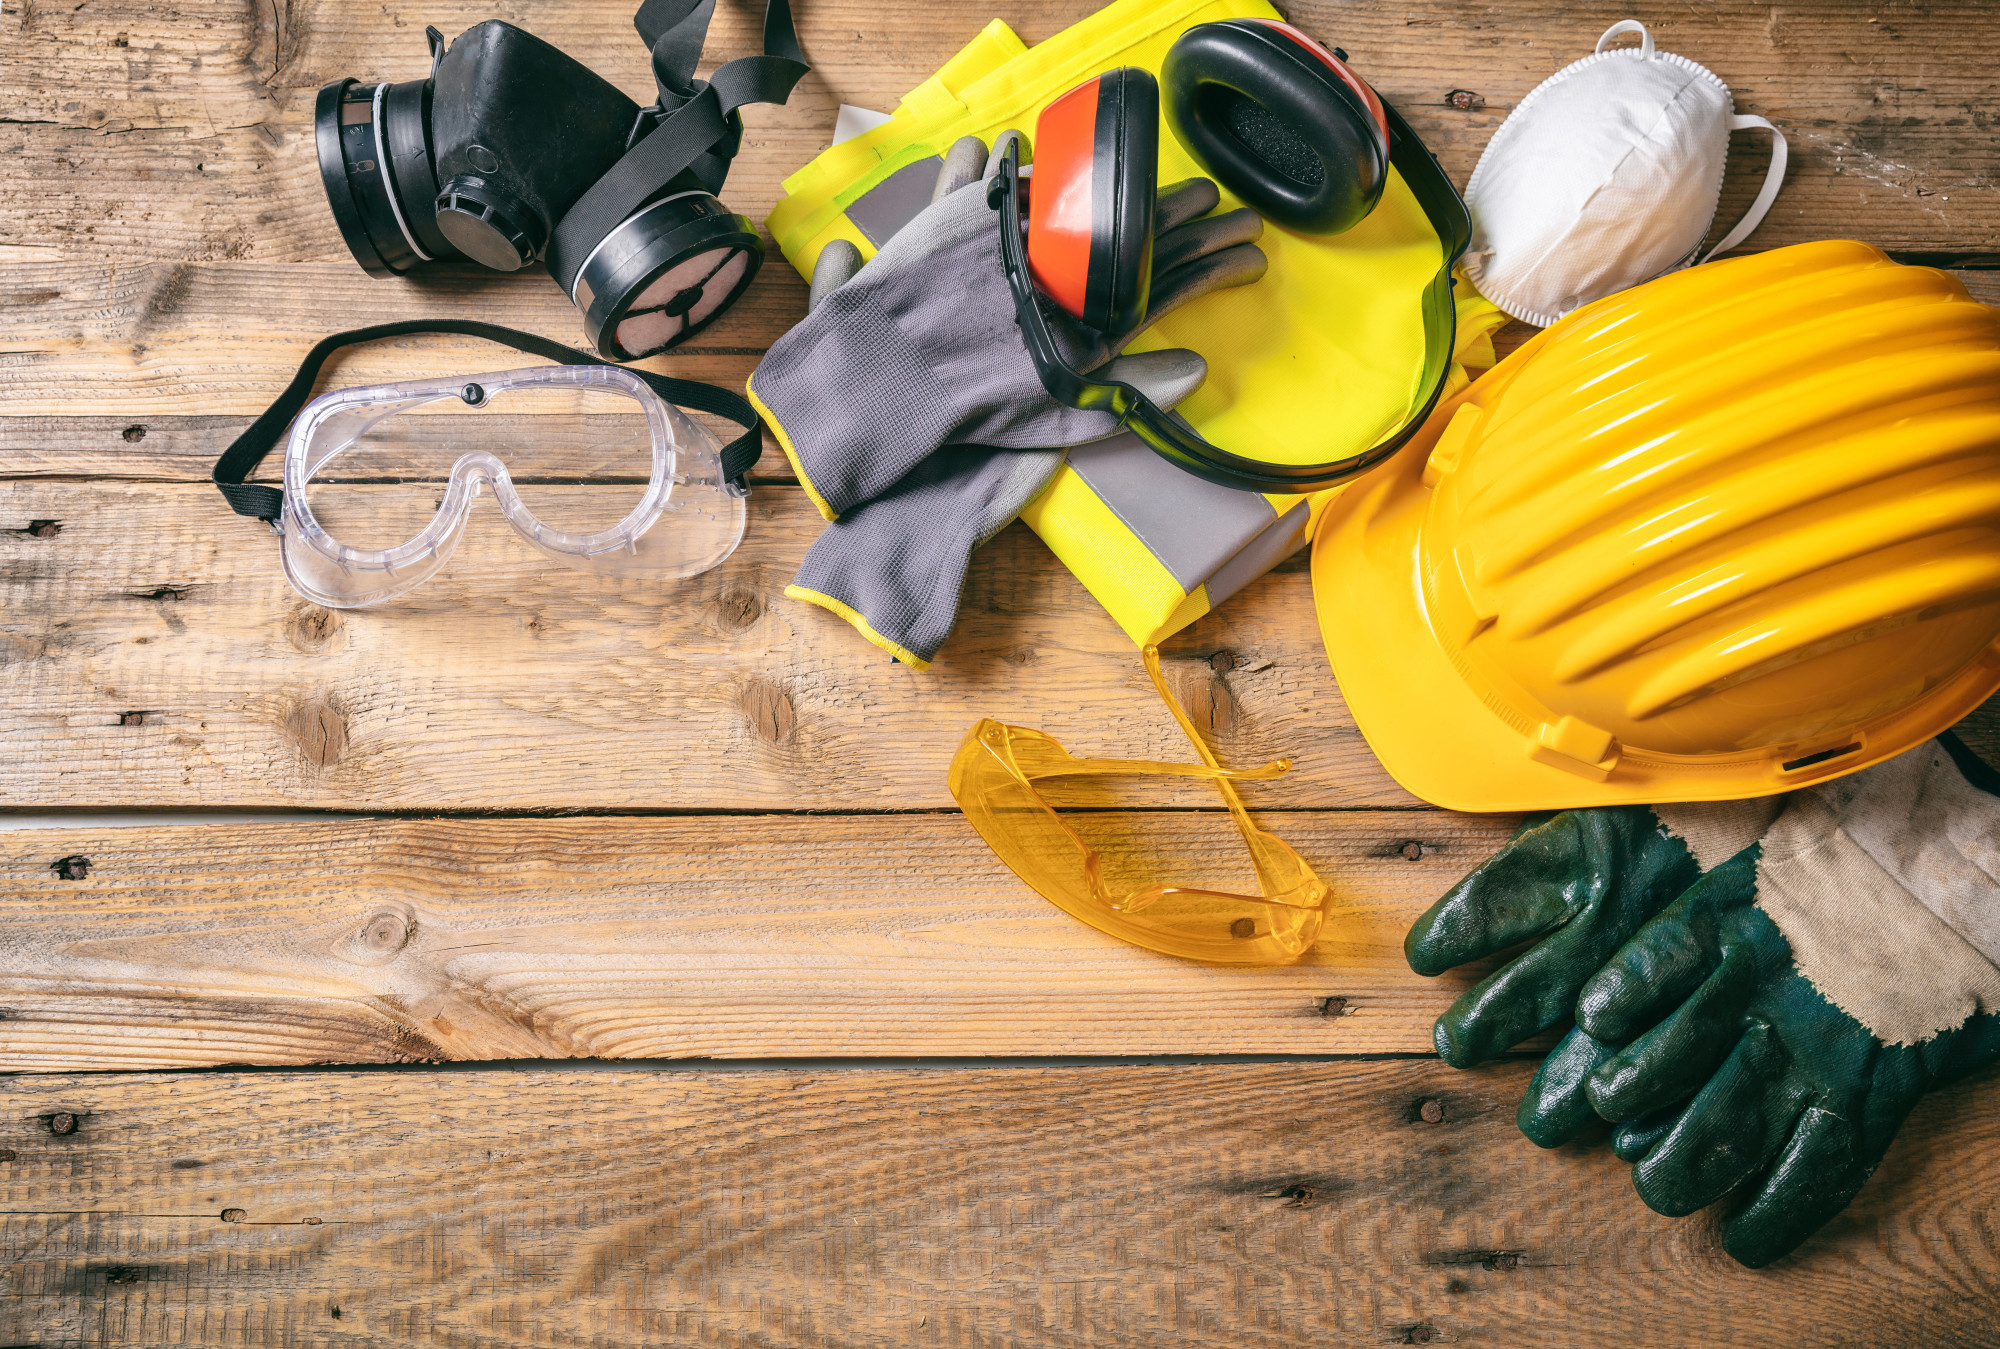 8 Practices to Improve Worksite Safety